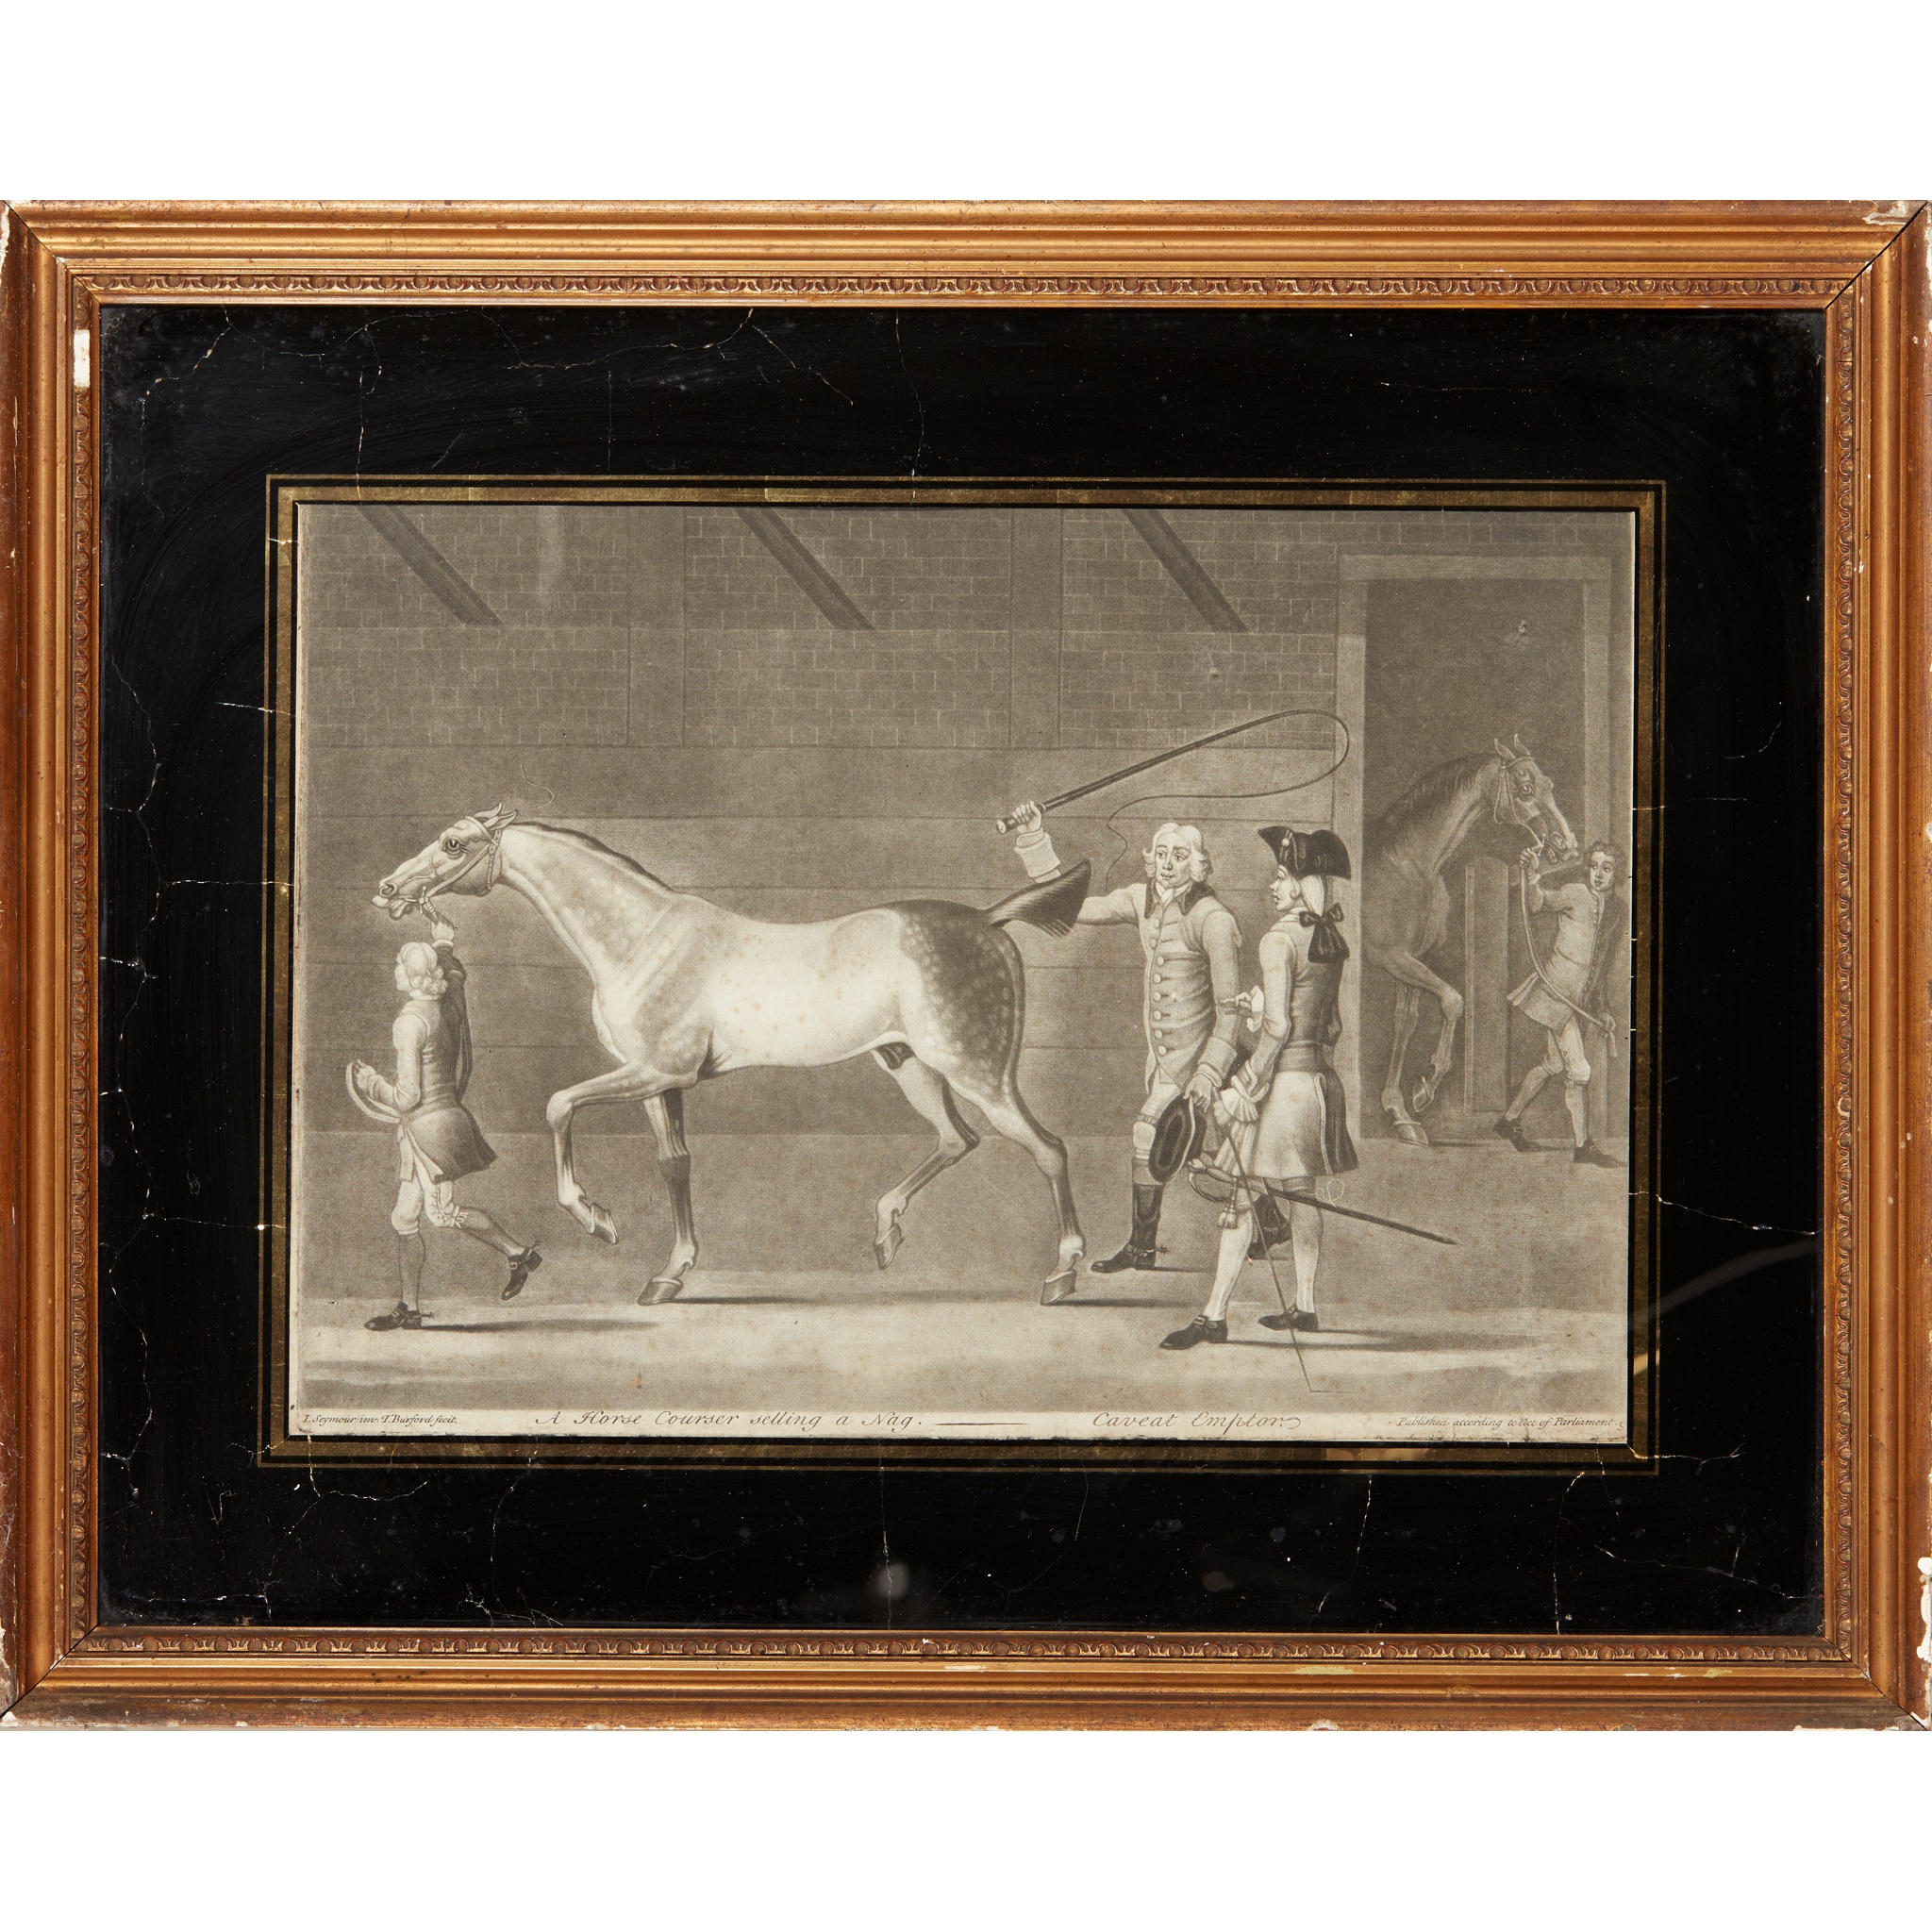 COLLECTION OF ELEVEN MEZZOTINT EQUESTRIAN PRINTS LATE 18TH CENTURY - Image 5 of 8